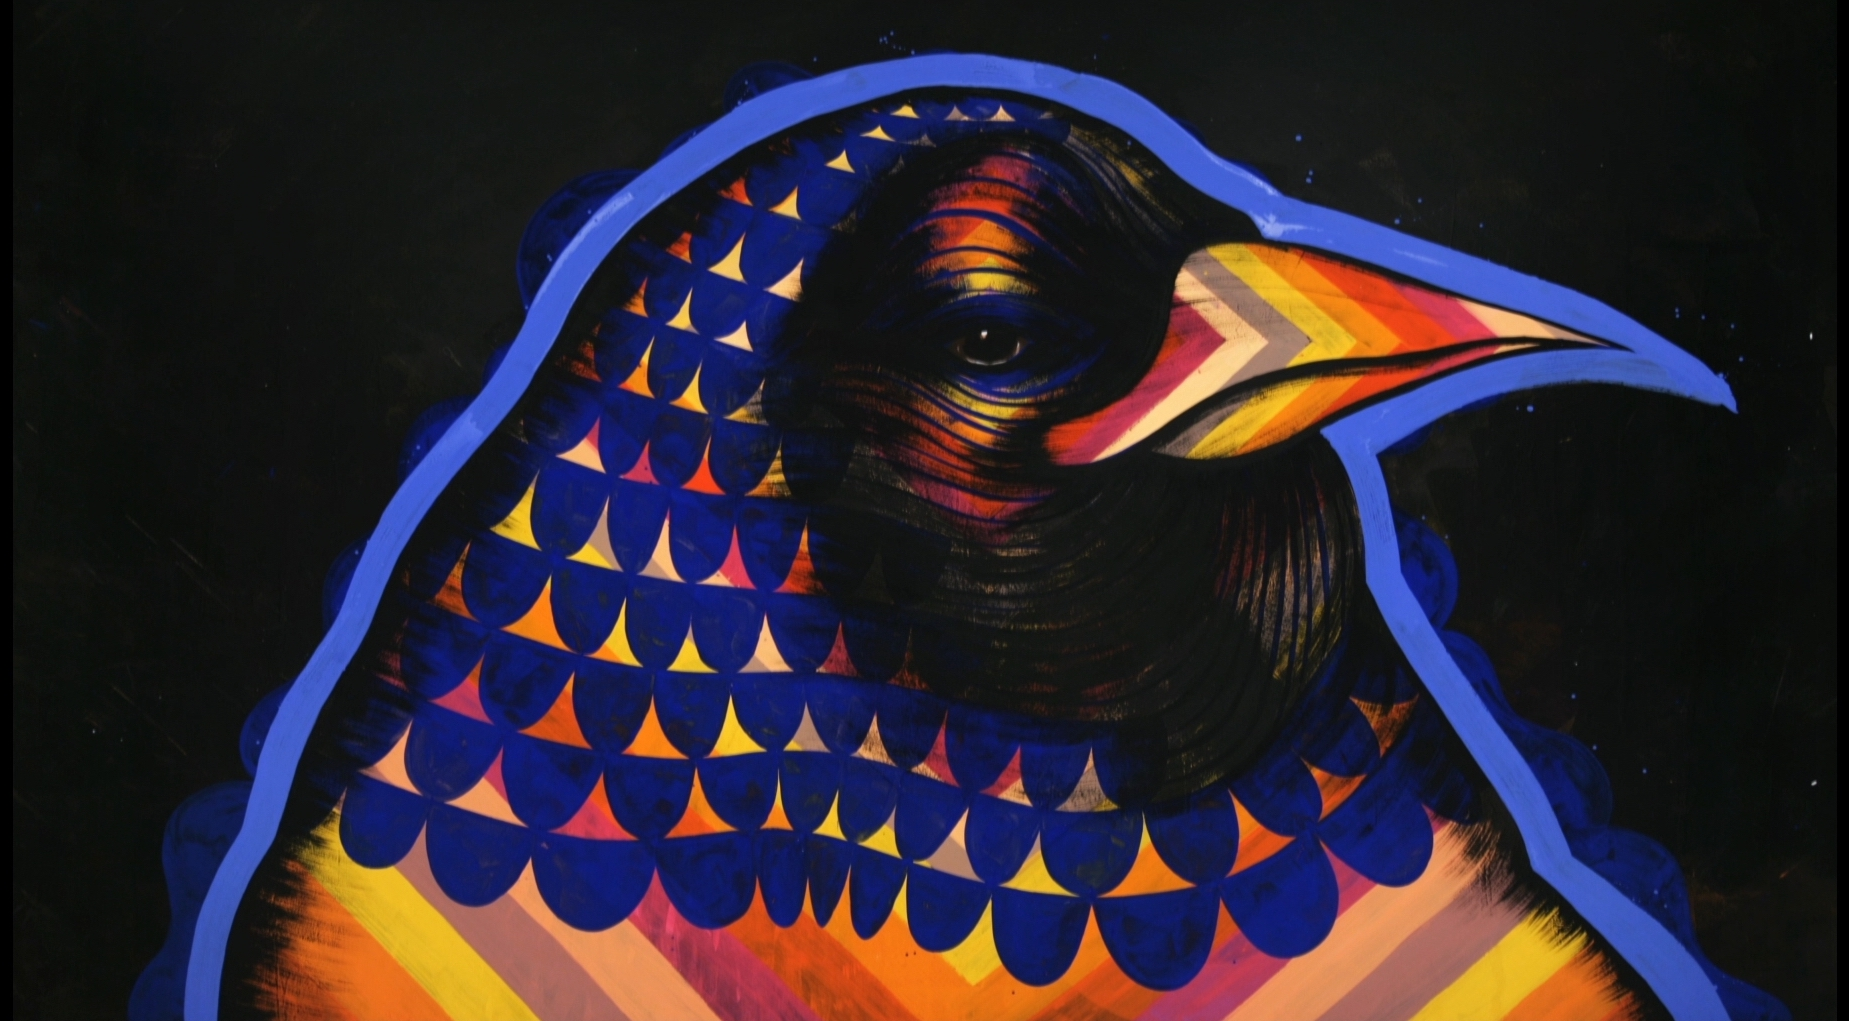 """A still from David Ellis' """"Animal."""" In this still a chicken in profile composed of bright colors and a pattern covering its body seems to be staring at the camera"""